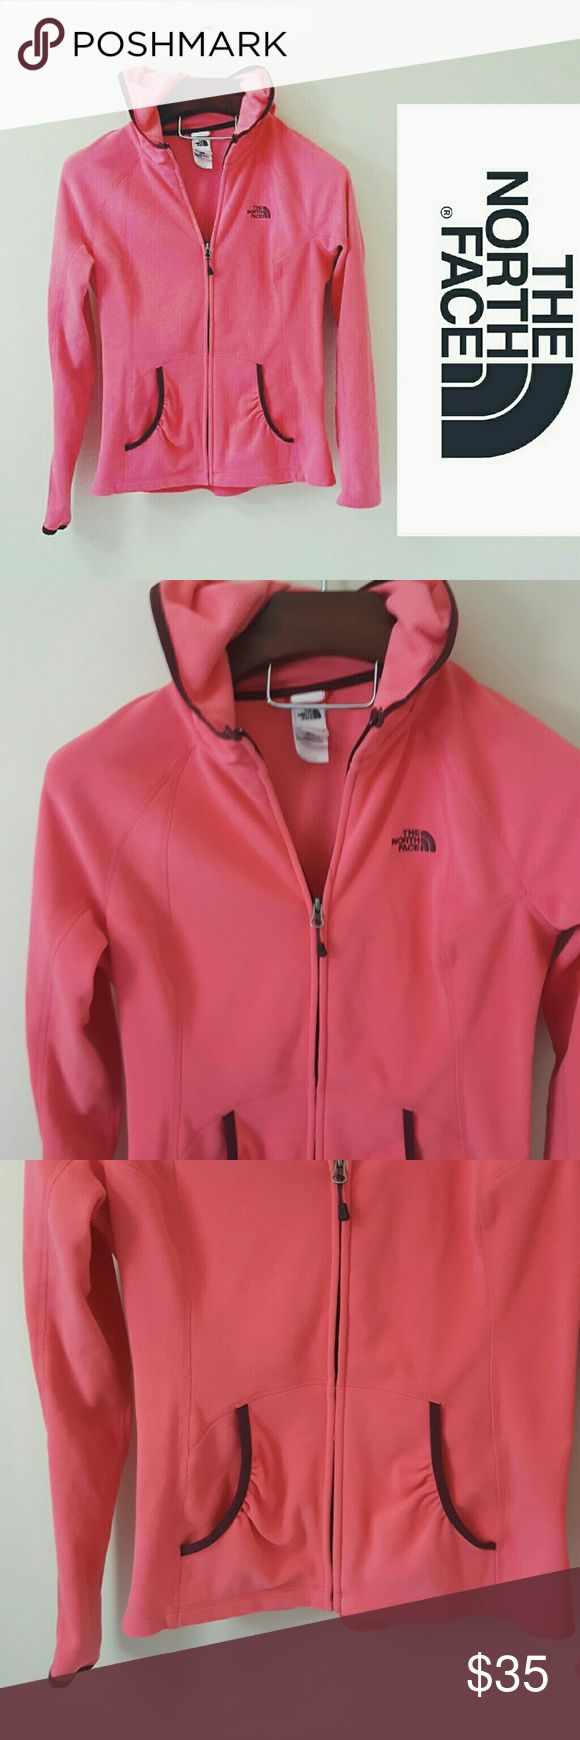 17 Best ideas about Pink Zip Ups on Pinterest | Black and white ...